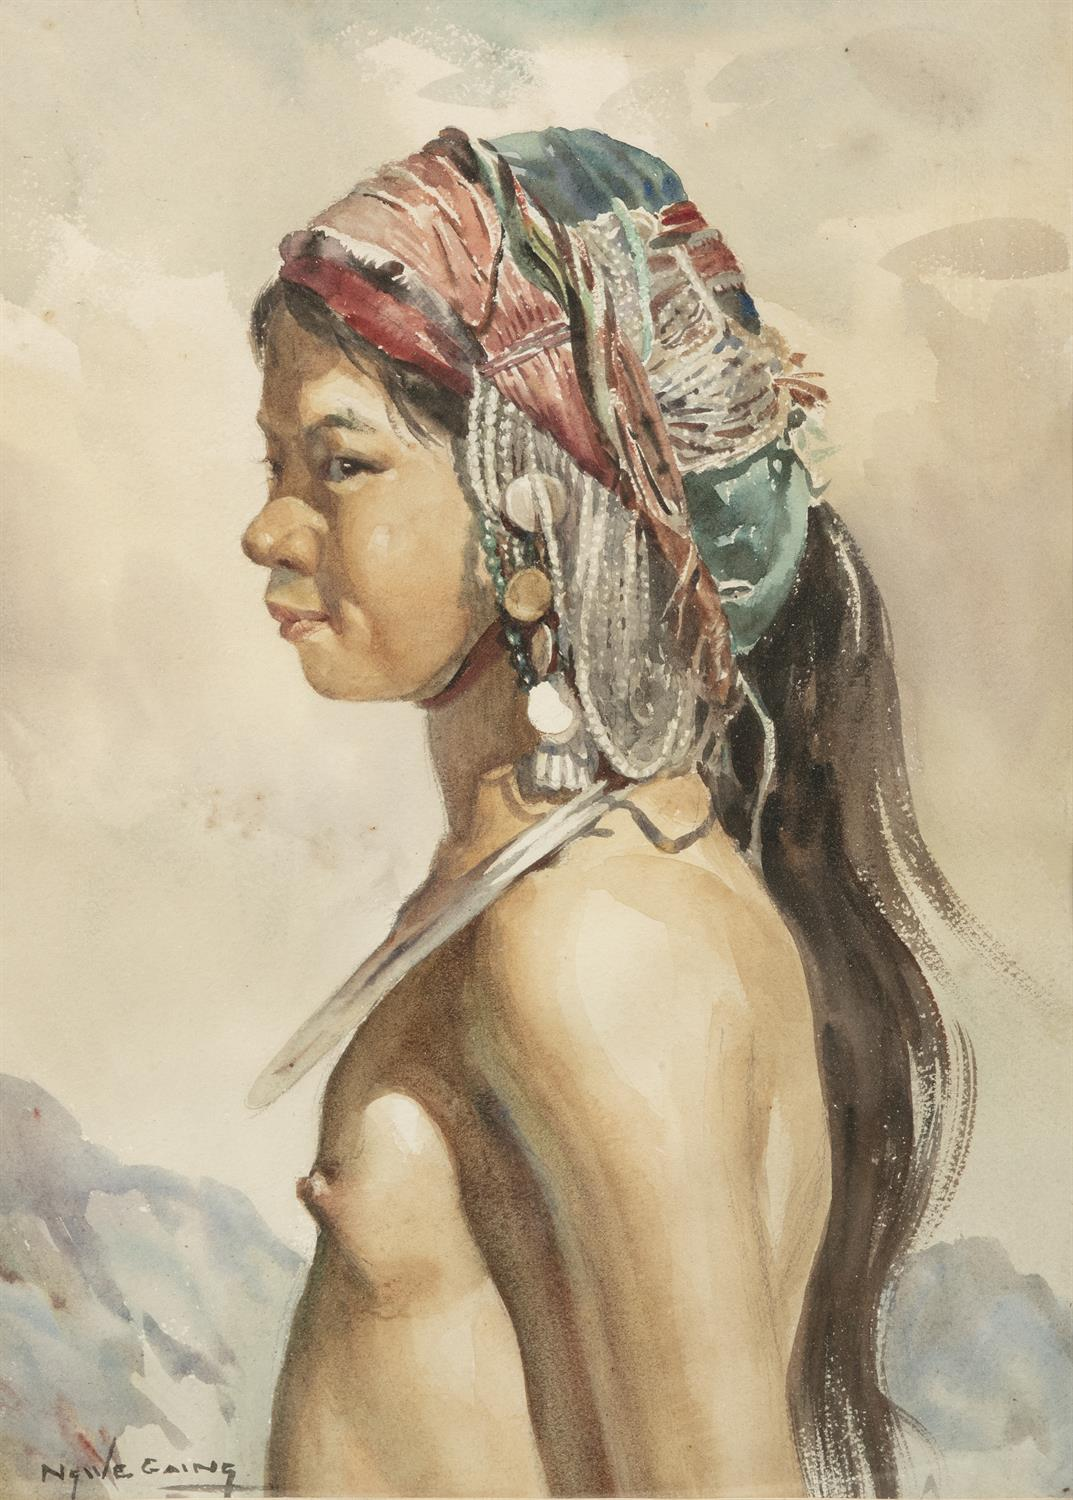 U Ngwe Gaing ငွေကိုင် (1901-1967) Portrait of a young girl from a tribe Mixed media, watercolour - Image 3 of 8